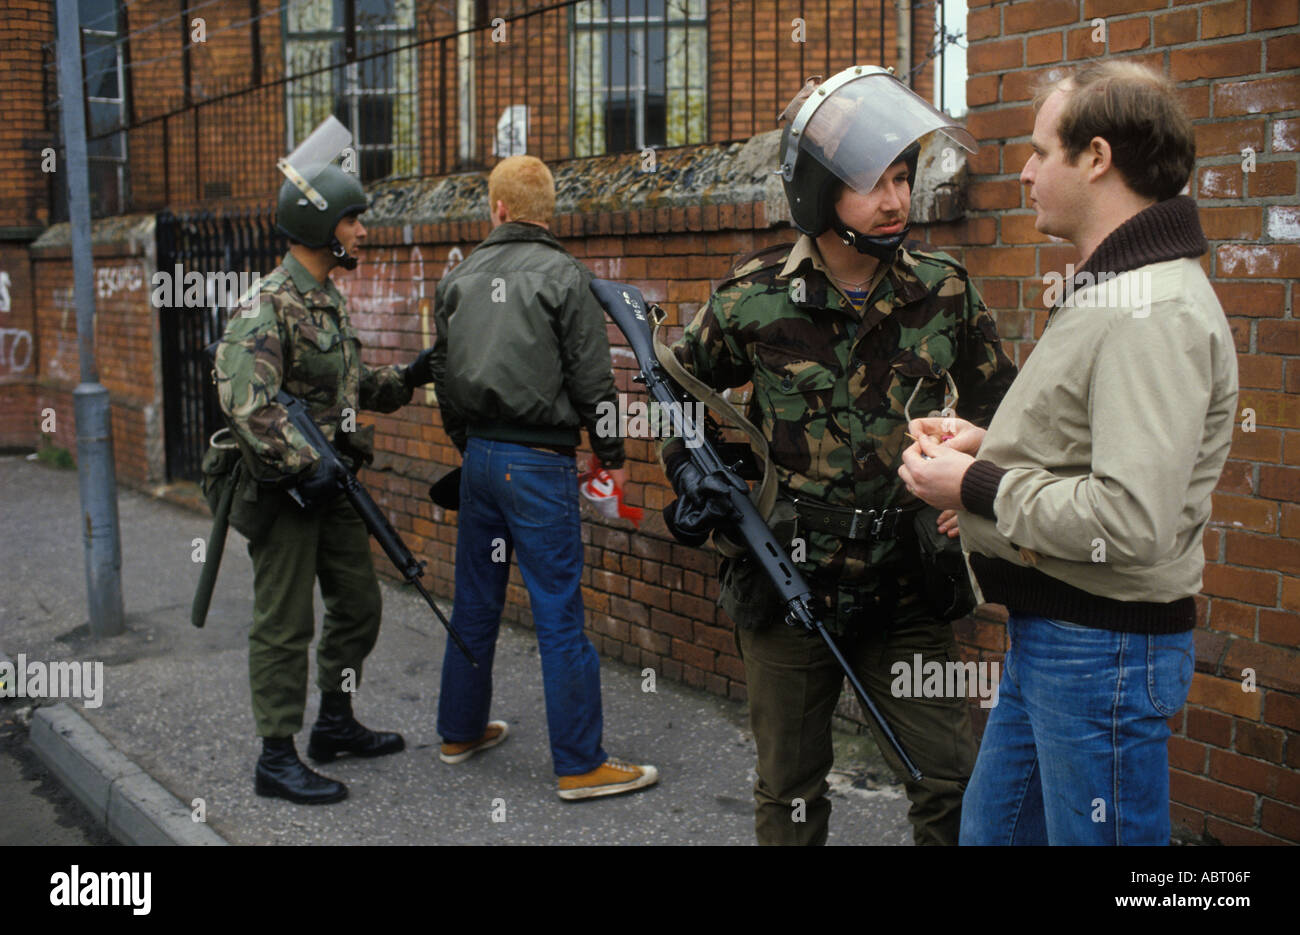 The Troubles Northern Ireland 1980s Catholic youth  British Army during the  troubles Belfast HOMER SYKES - Stock Image